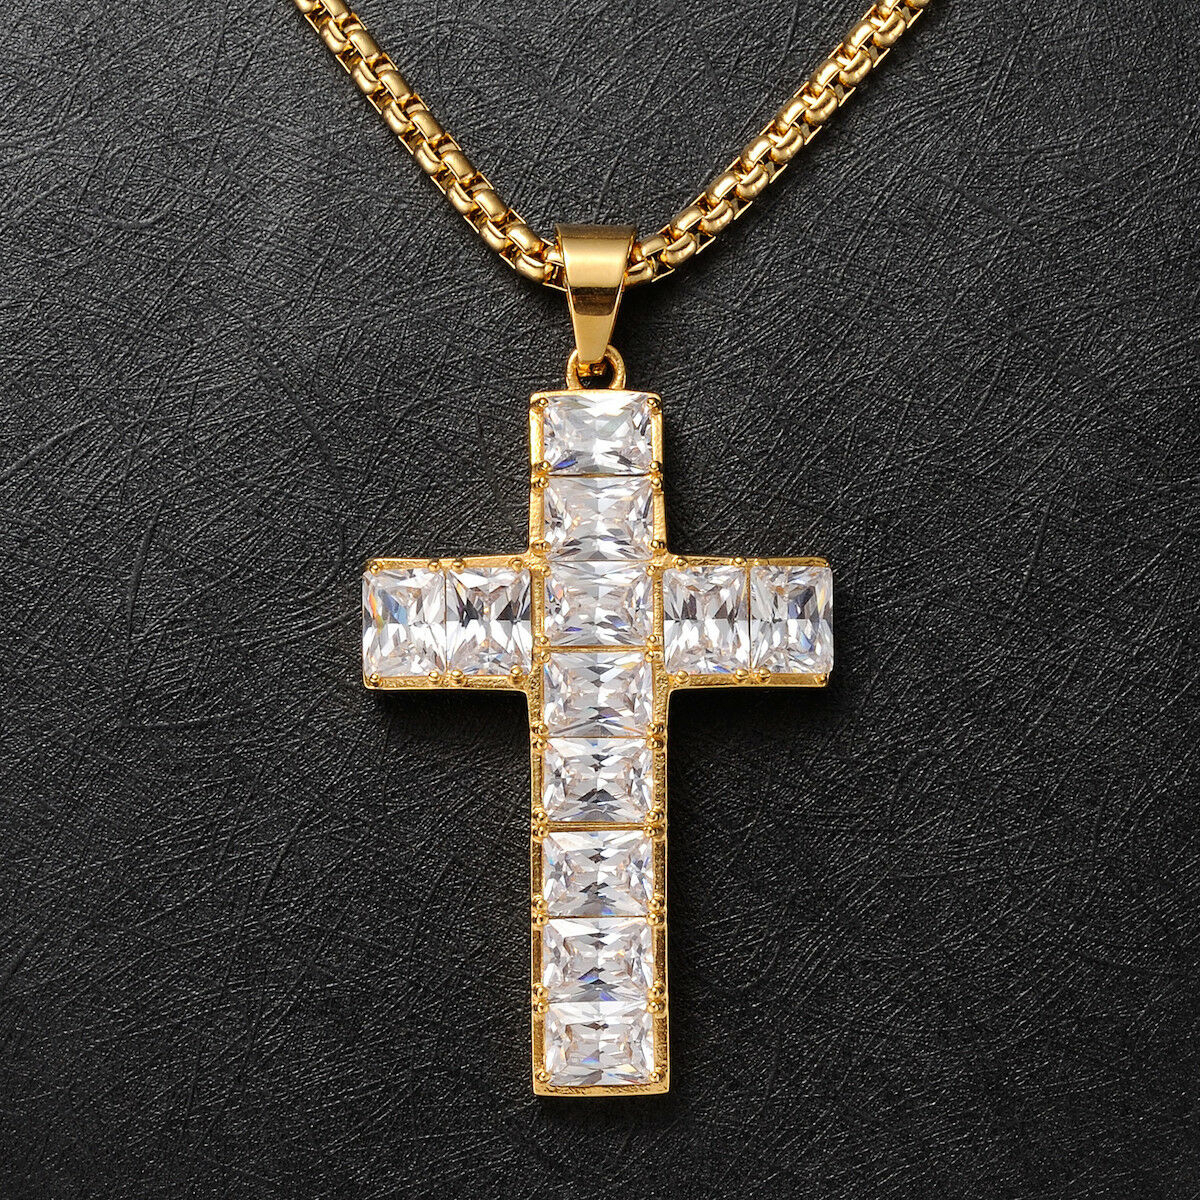 Details About Mens 18 Yellow Gold Filled Sparkling Large Cross Pendant Necklace Jewellery 60cm In Newest Sparkling Cross Pendant Necklaces (View 8 of 25)